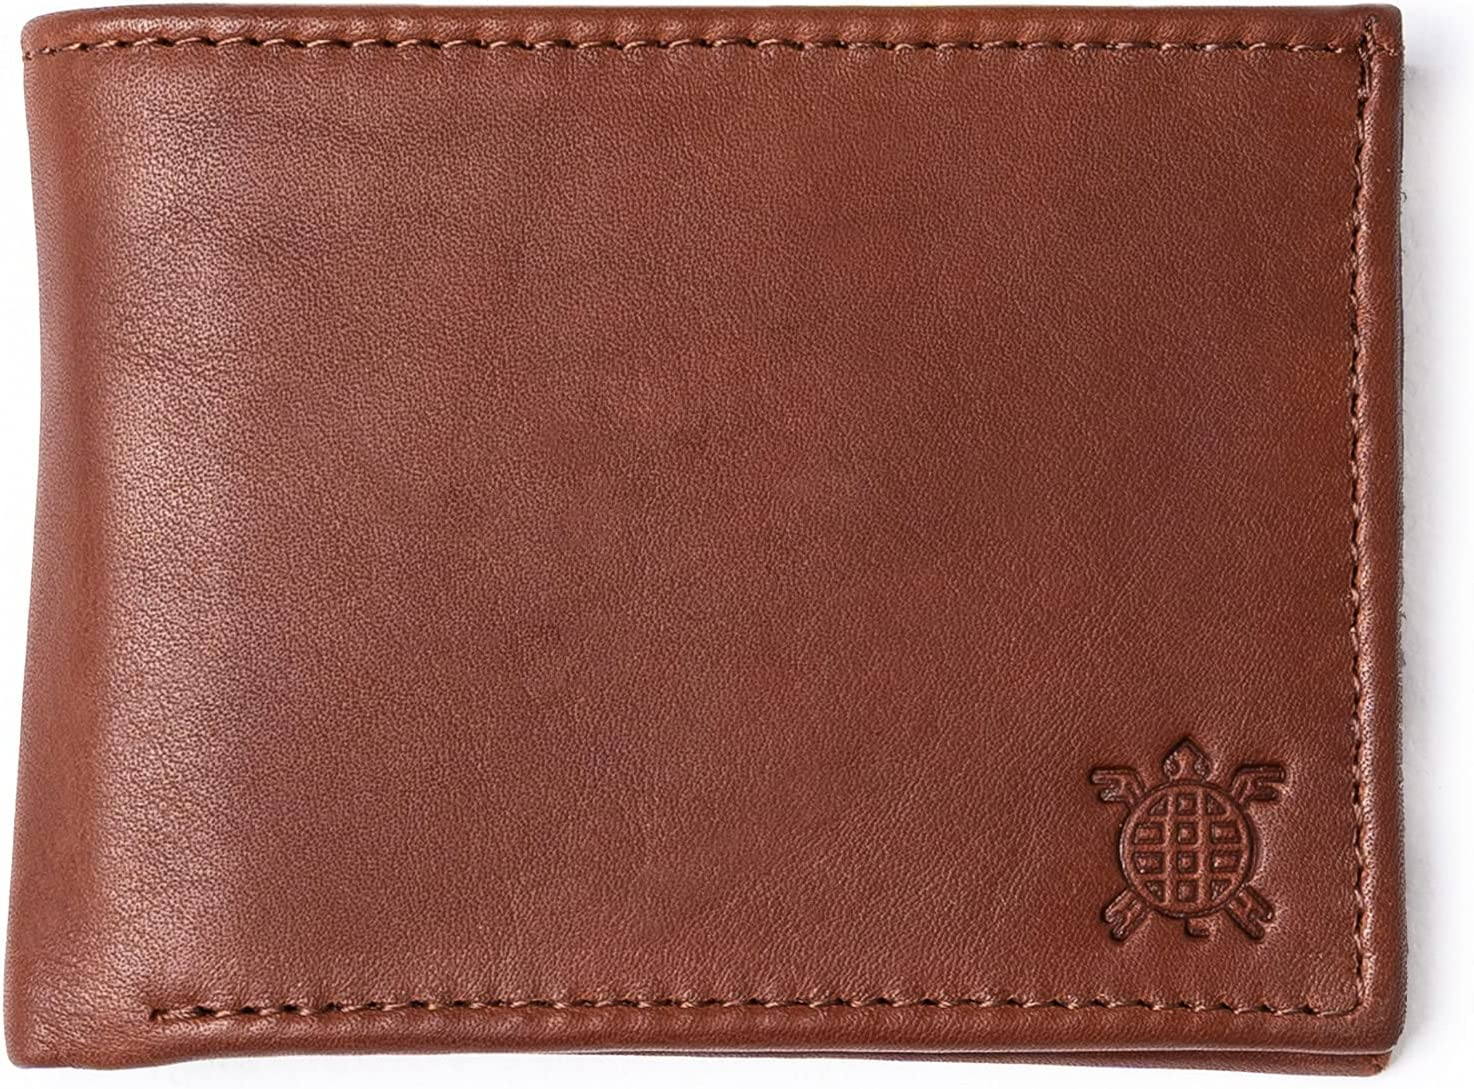 Classic Leather Men´s Wallet - Minimalist, Timeless and Elegant Wallet for Men Imported Leather with Card Holders and a Large Billfold pocket (Brown)